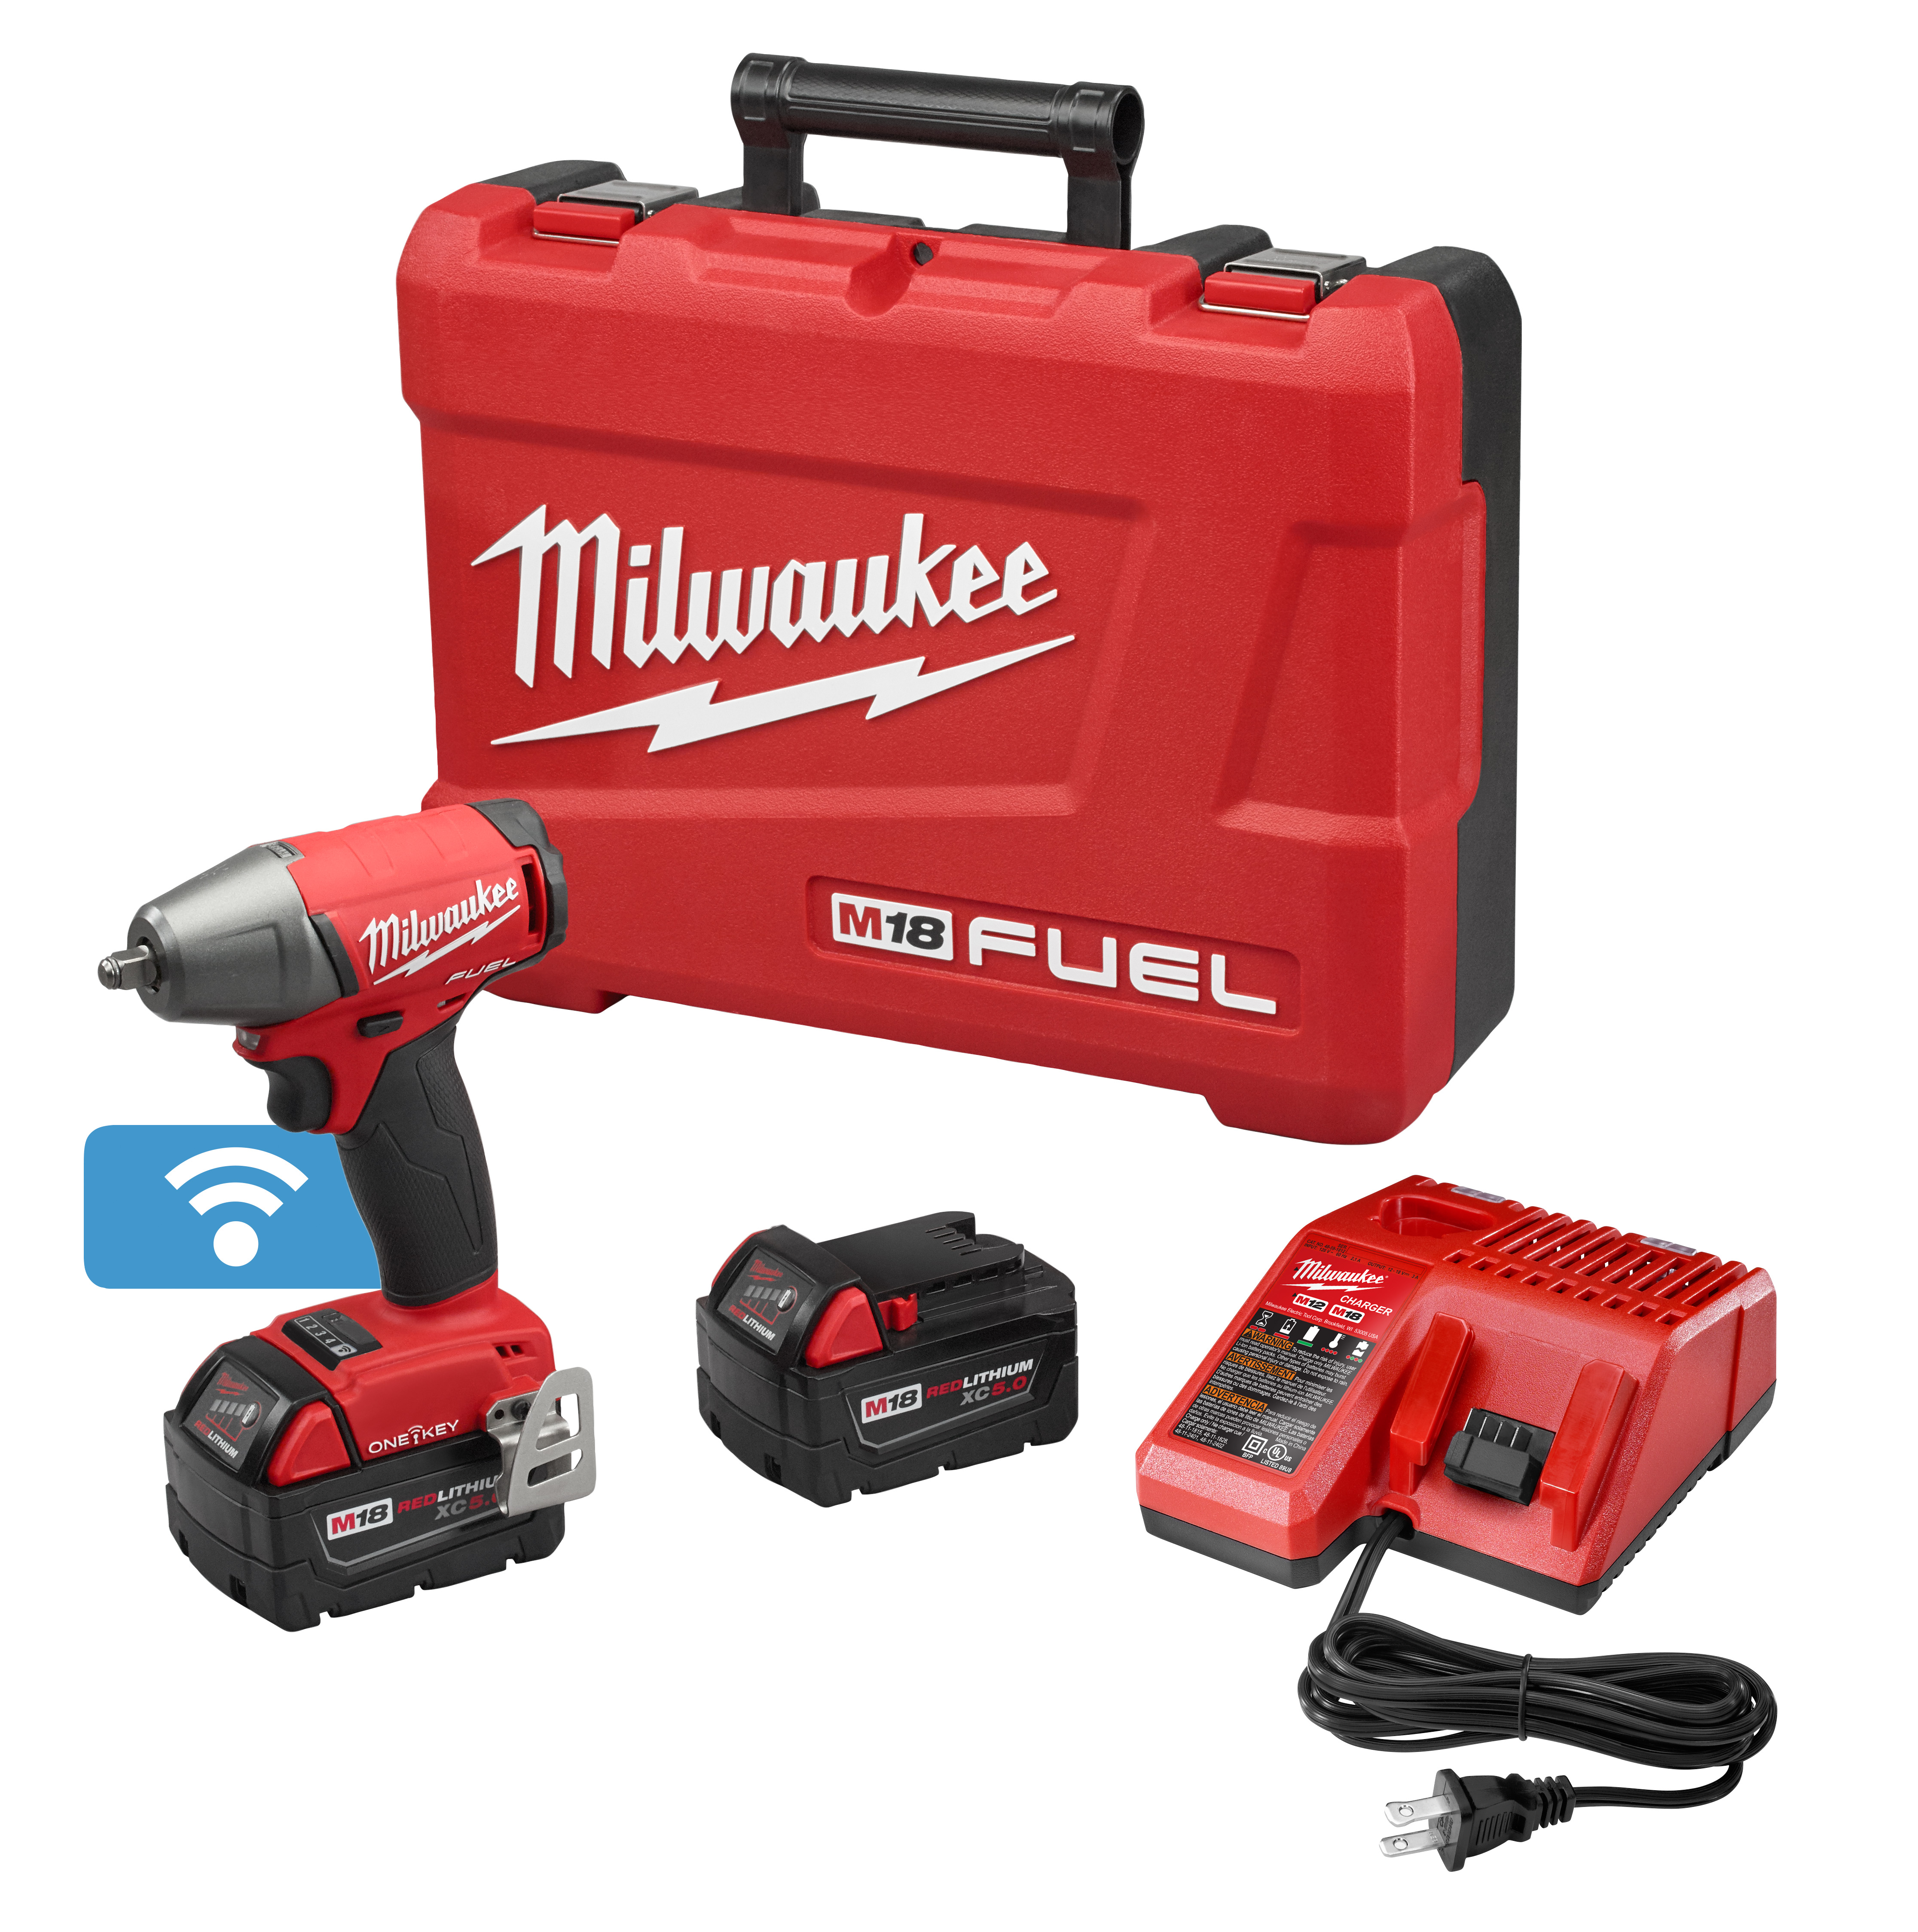 Milwaukee® M18™ FUEL™ 2758-22 Brushless Compact Compact Impact Wrench Kit With Friction Ring, 3/8 in Straight Drive, 0 to 3200 bpm, 210 ft-lb Torque, 18 VDC, 5.9 in OAL